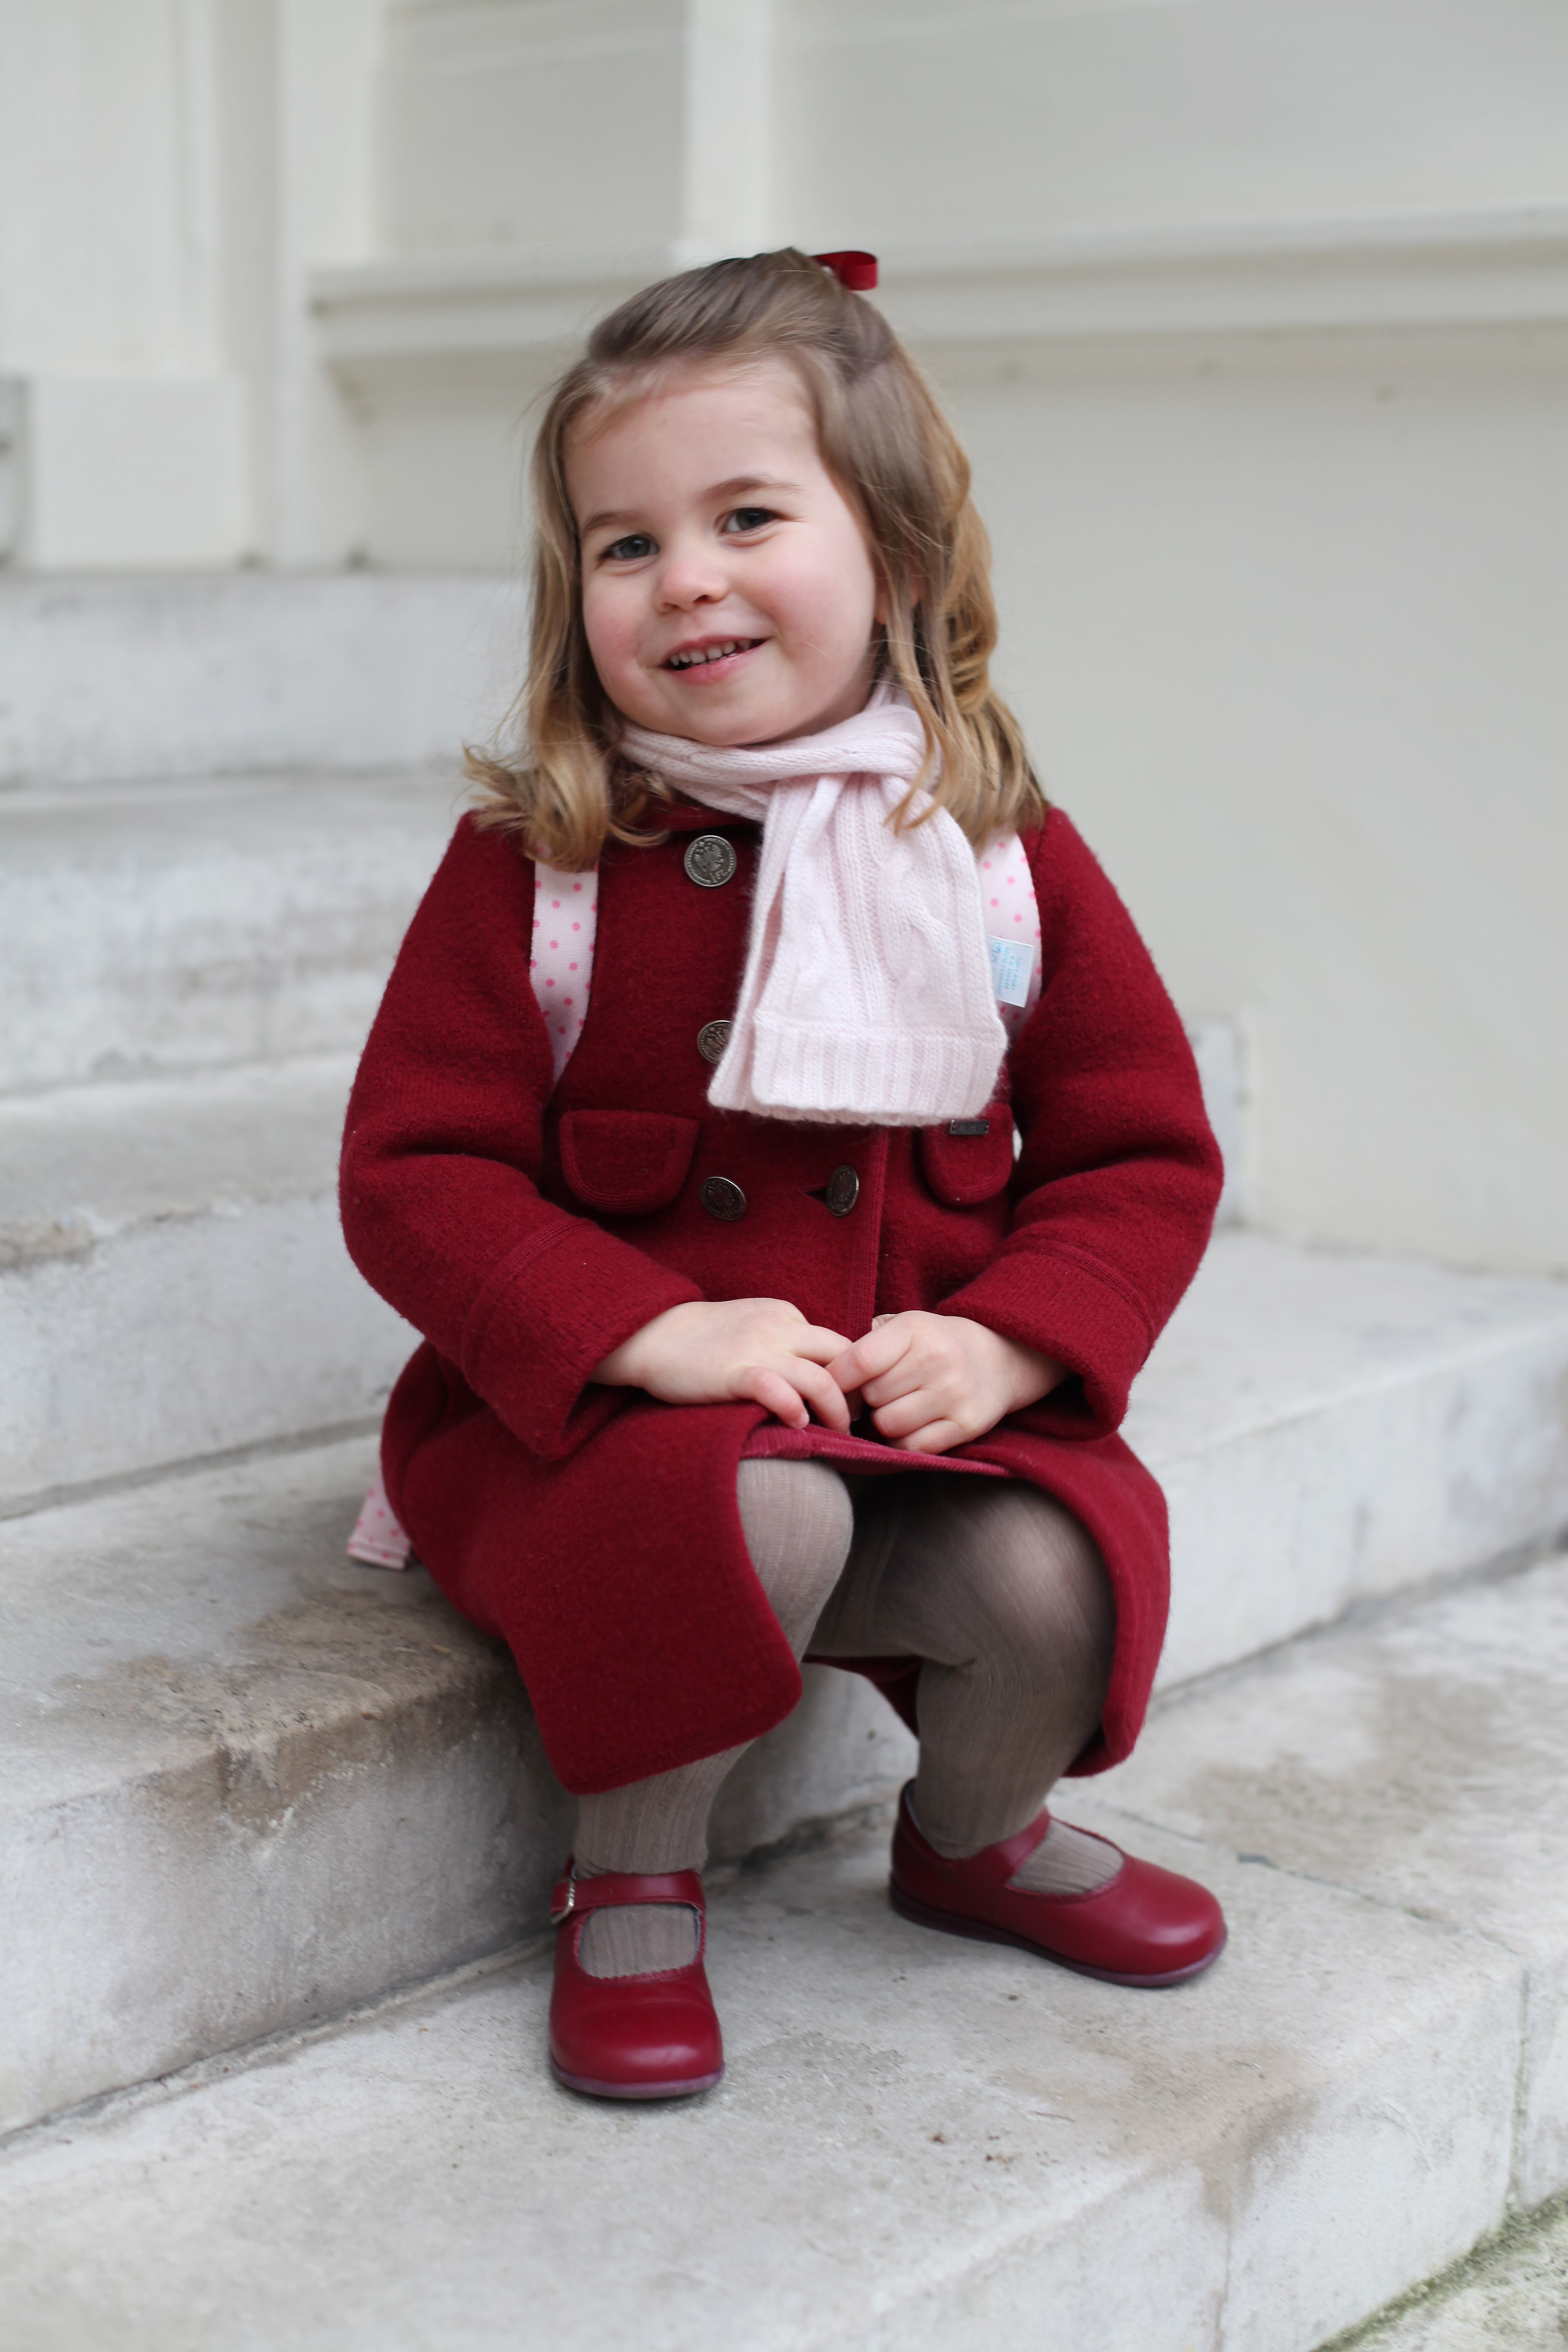 Princess Charlotte is 'looking forward' to becoming a big sister